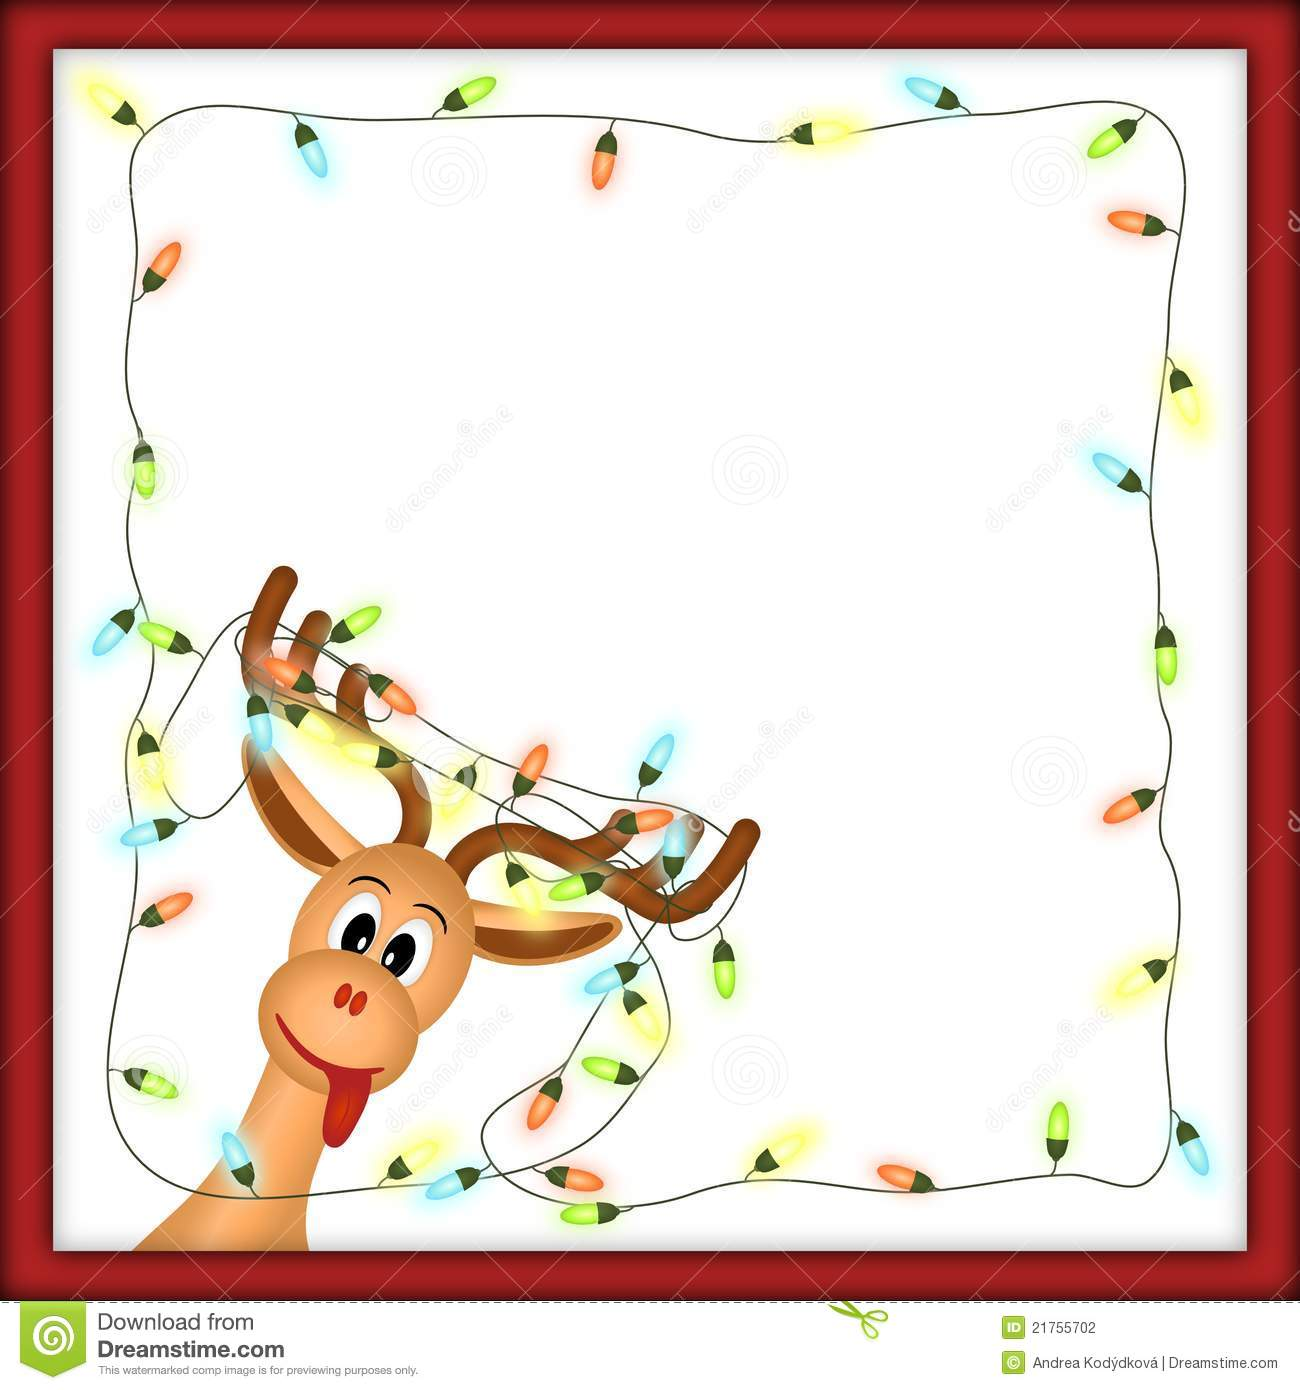 Funny Reindeer With Christmas Lights In Red Frame Stock